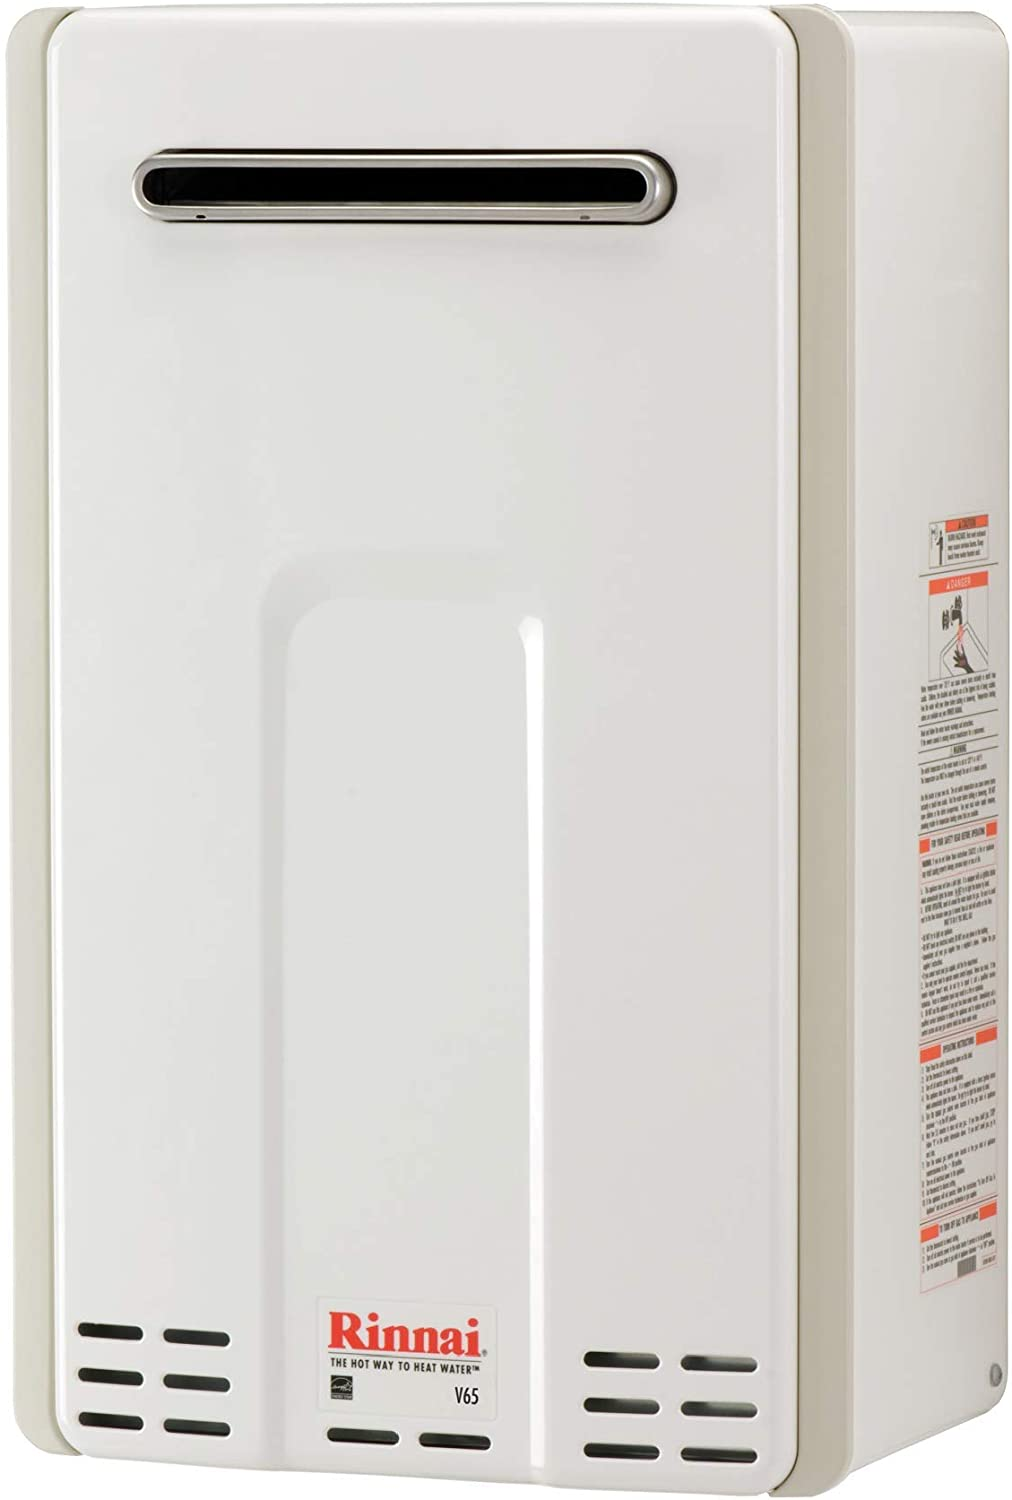 Rinnai V65EP Tankless Water Heater, Large, V65eP-Propane/6.5 GPM - -